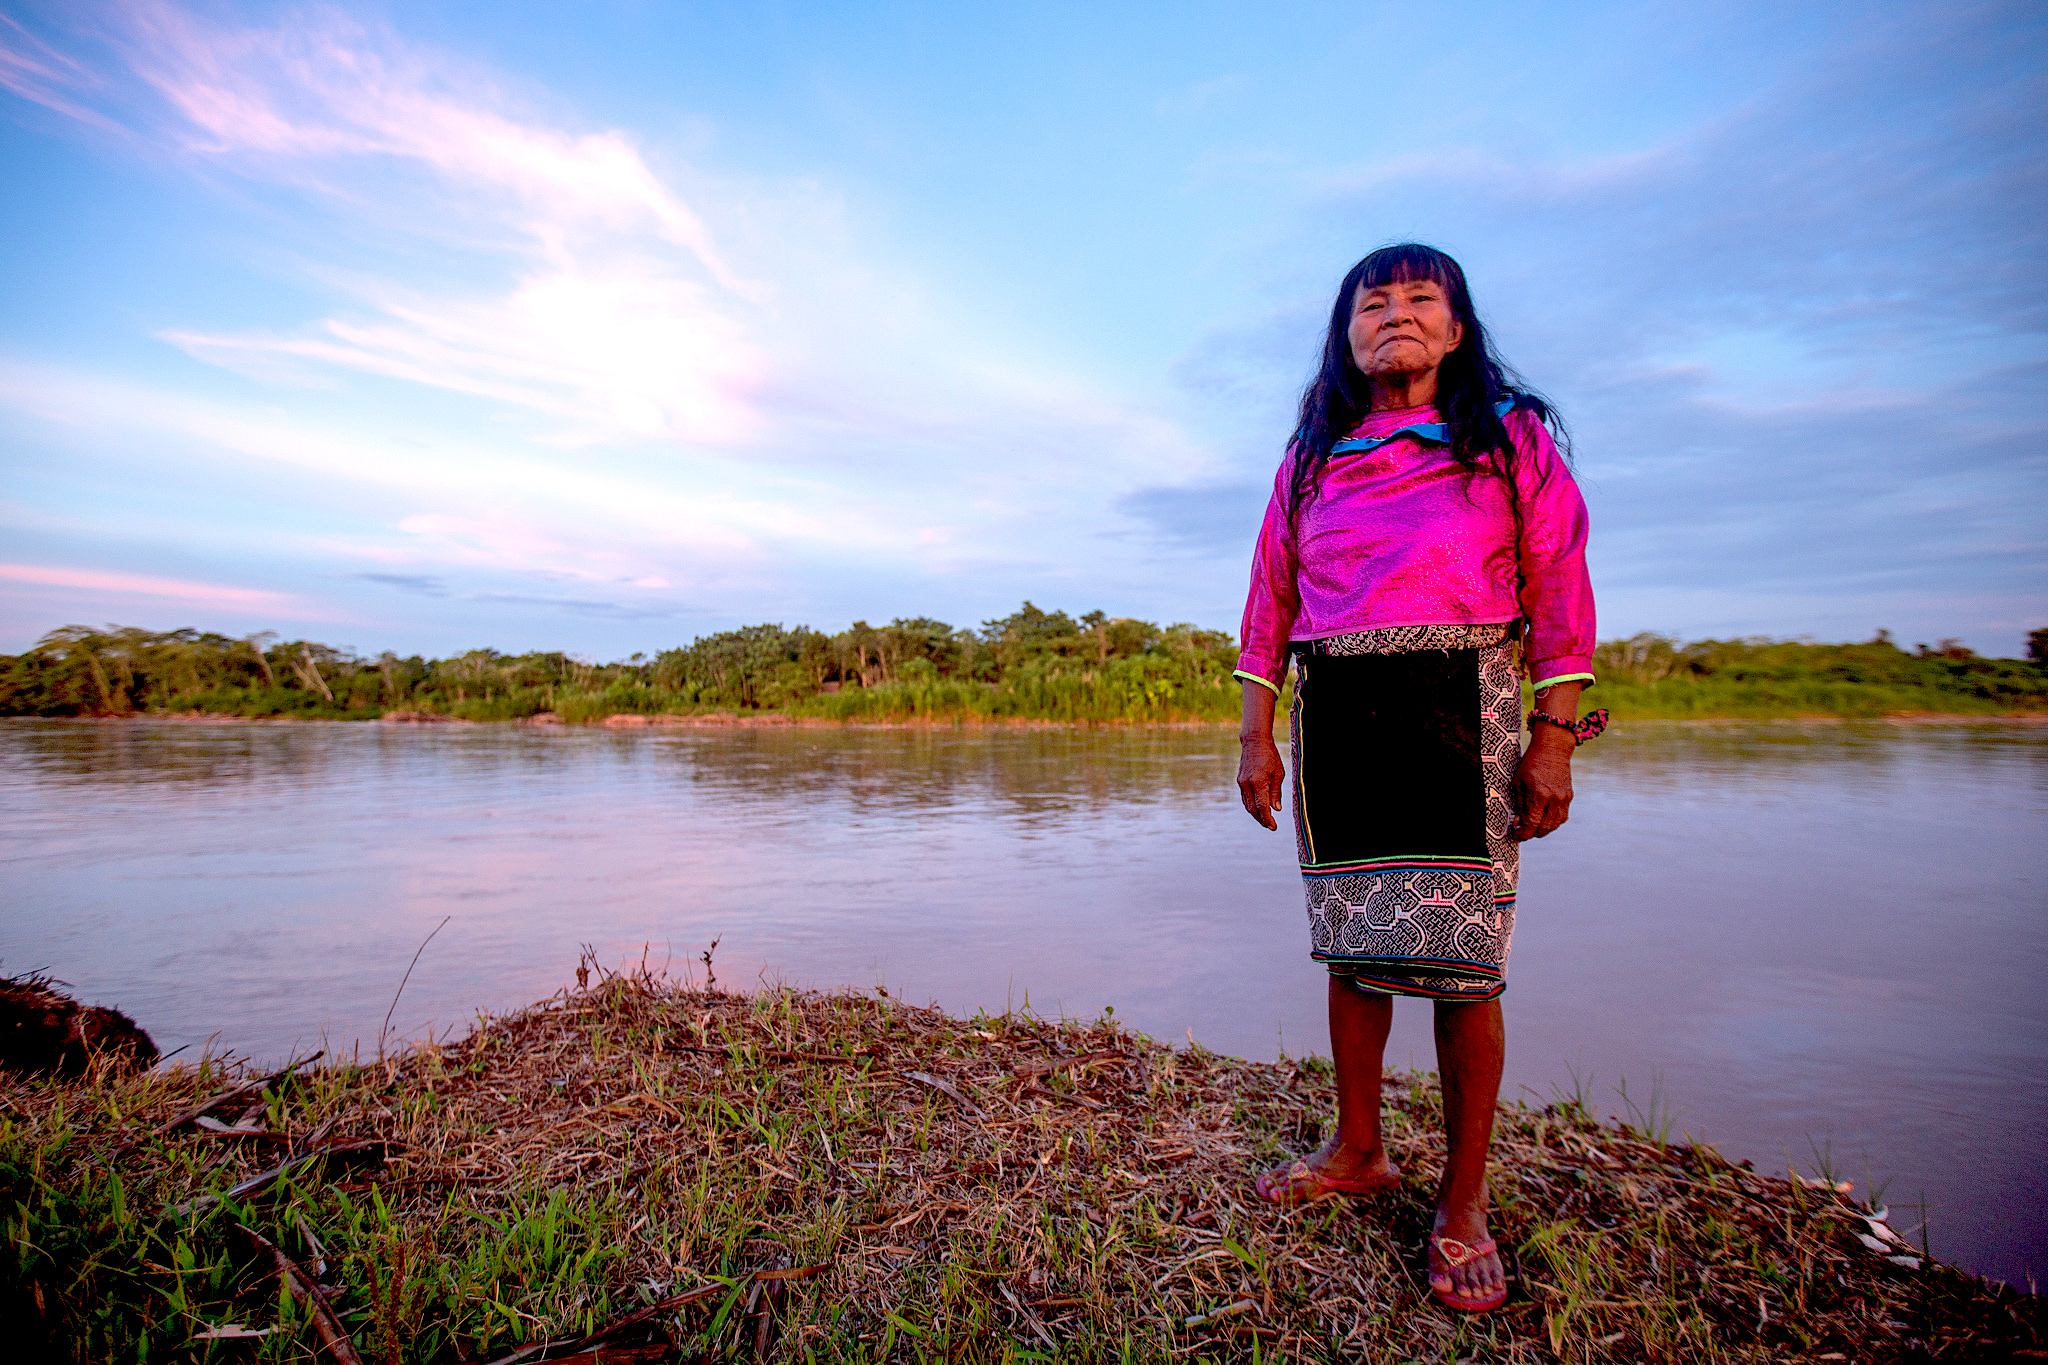 world bank, stand 4 her land, peru, land rights, indigenous